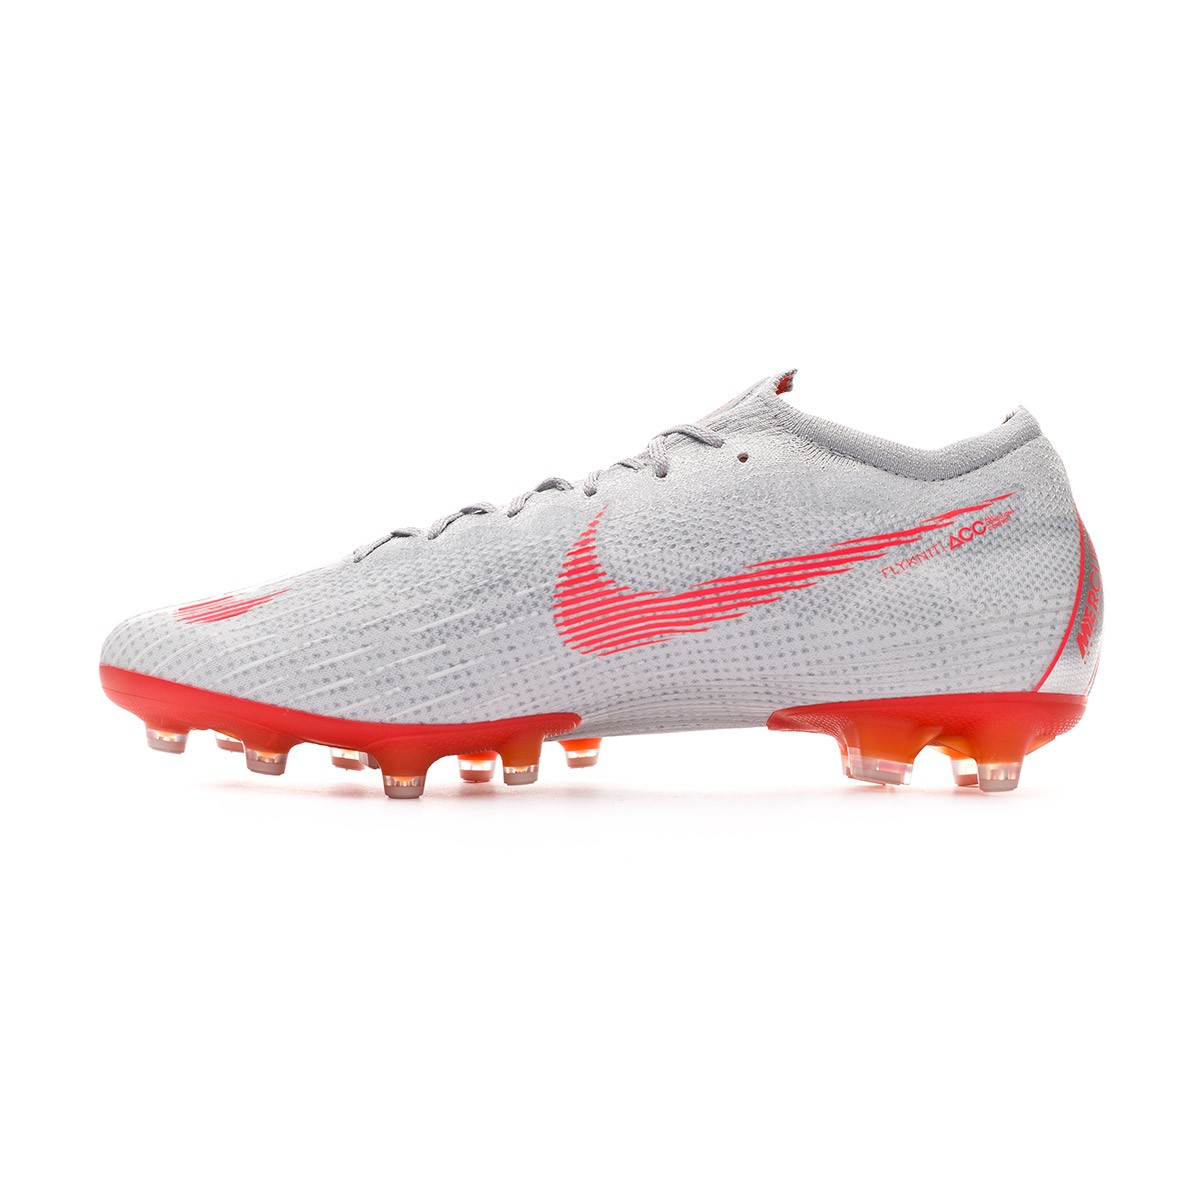 Boot Nike Mercurial Vapor XII Elite AG-Pro Wolf grey-Light c